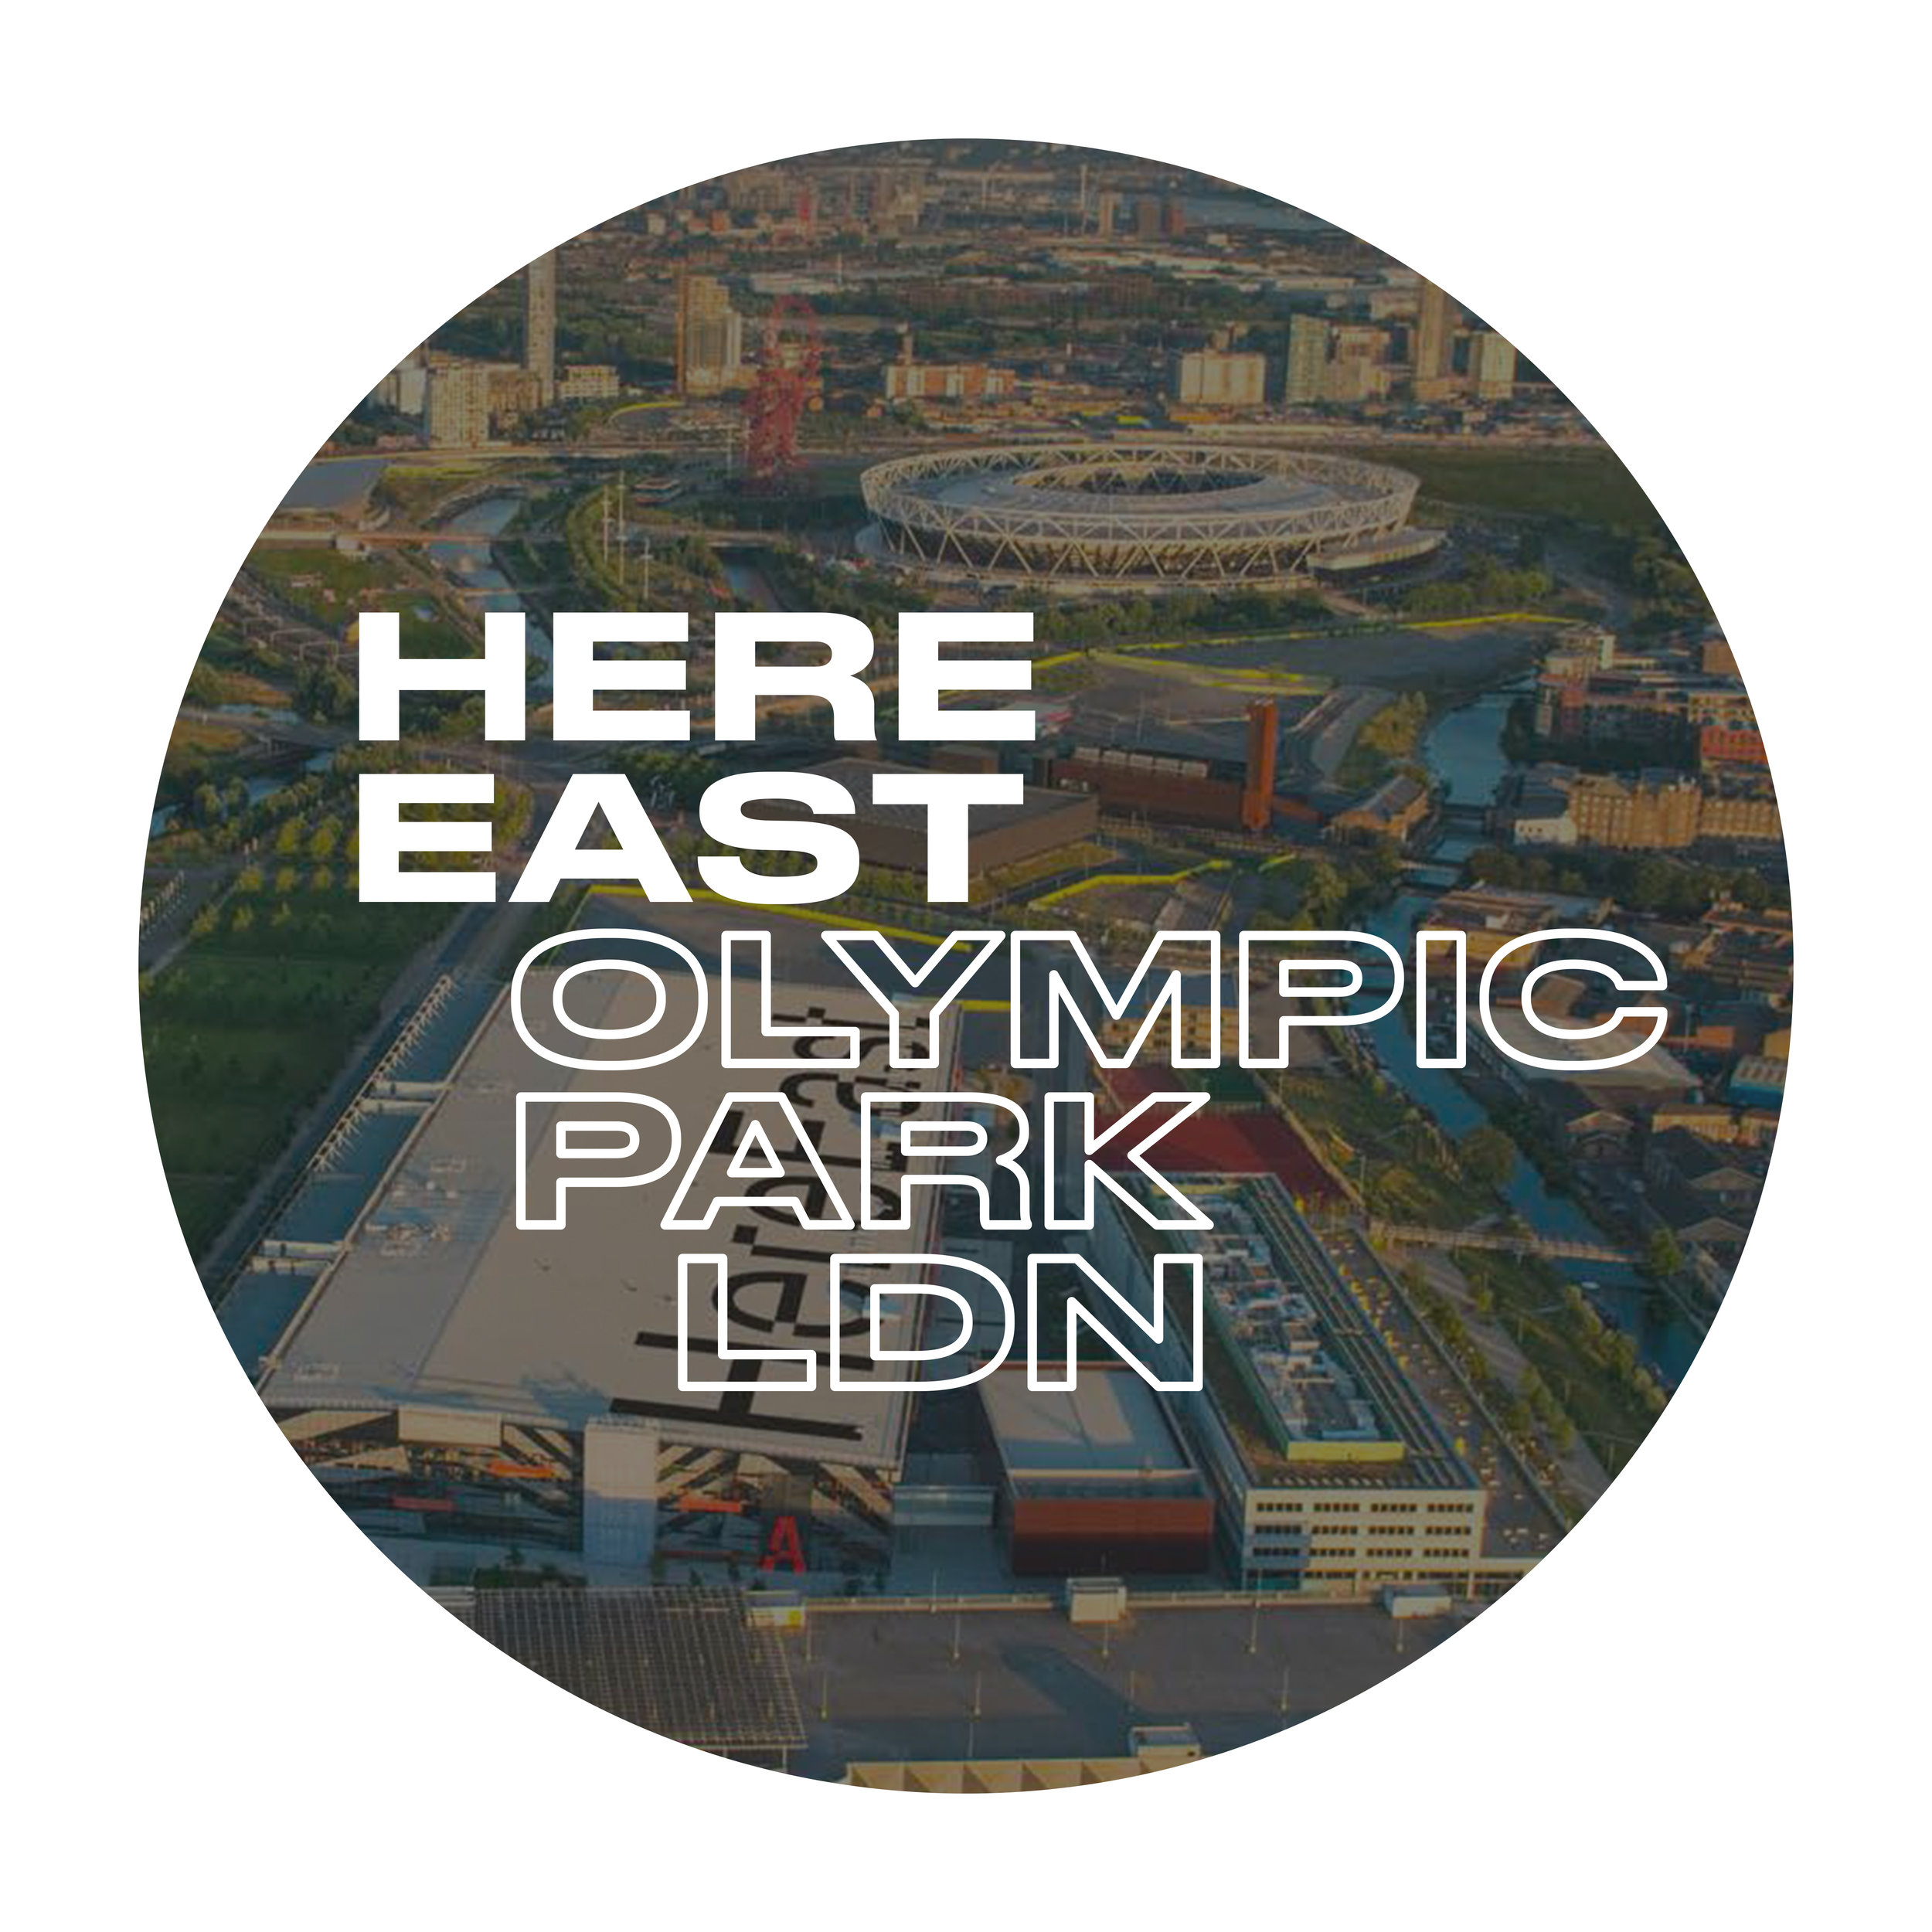 WHERE? - This year we've got an exciting new home at Here East, in London's Olympic Park, near Stratford.Every loop will start and finish at our basecamp, within the hour. We'll have a basecamp hub, where there will be an easily accessible bag drop, refreshments, toilets and plenty of friendly faces at all hours. Plus more activities and fun to be confirmed soon!Here East, Queen Elizabeth Olympic Park, E20 3BS